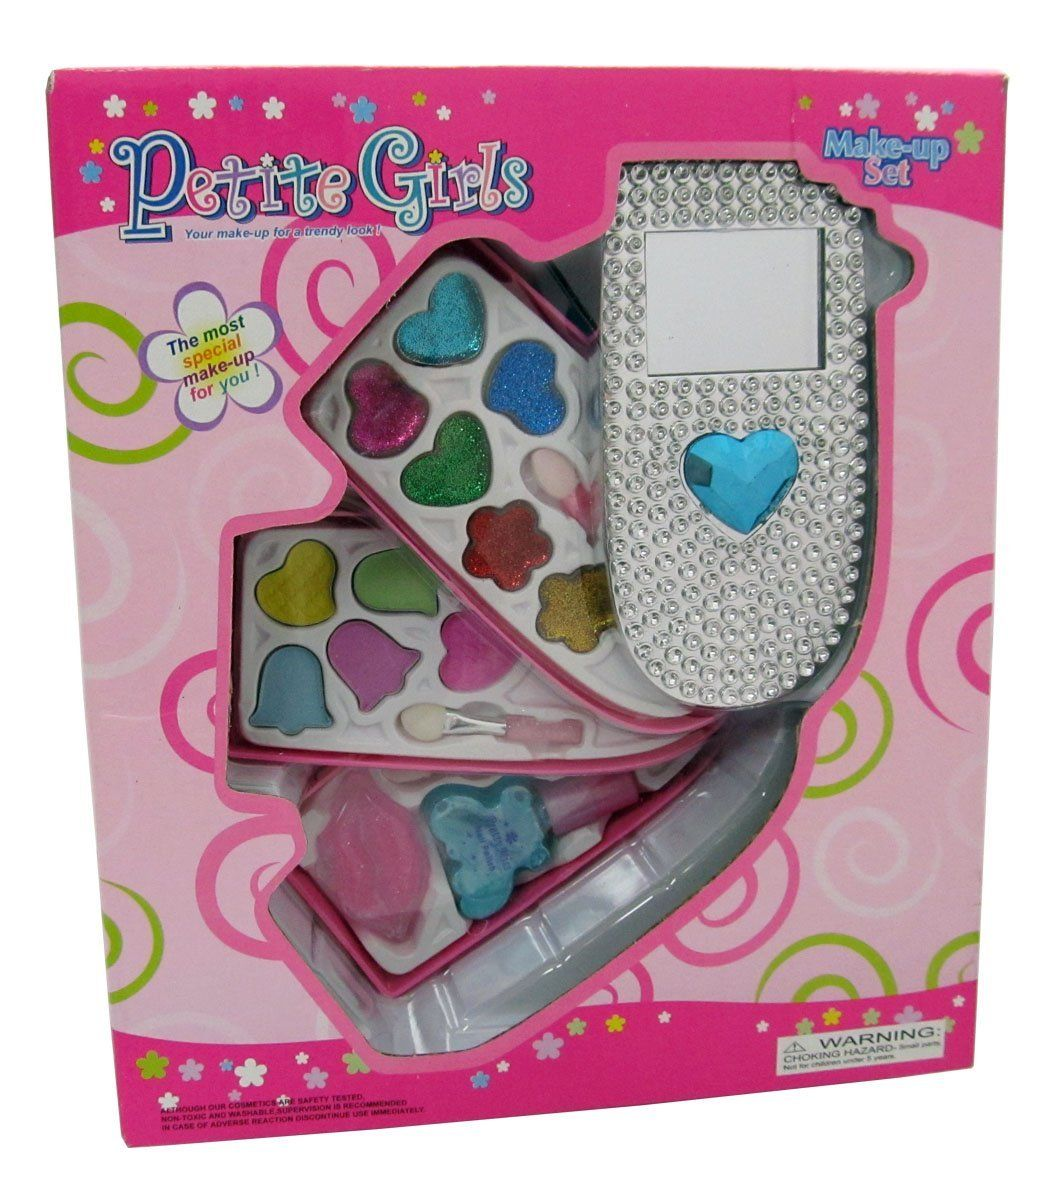 Petite Girls Cell Phone Shaped Cosmetics Play